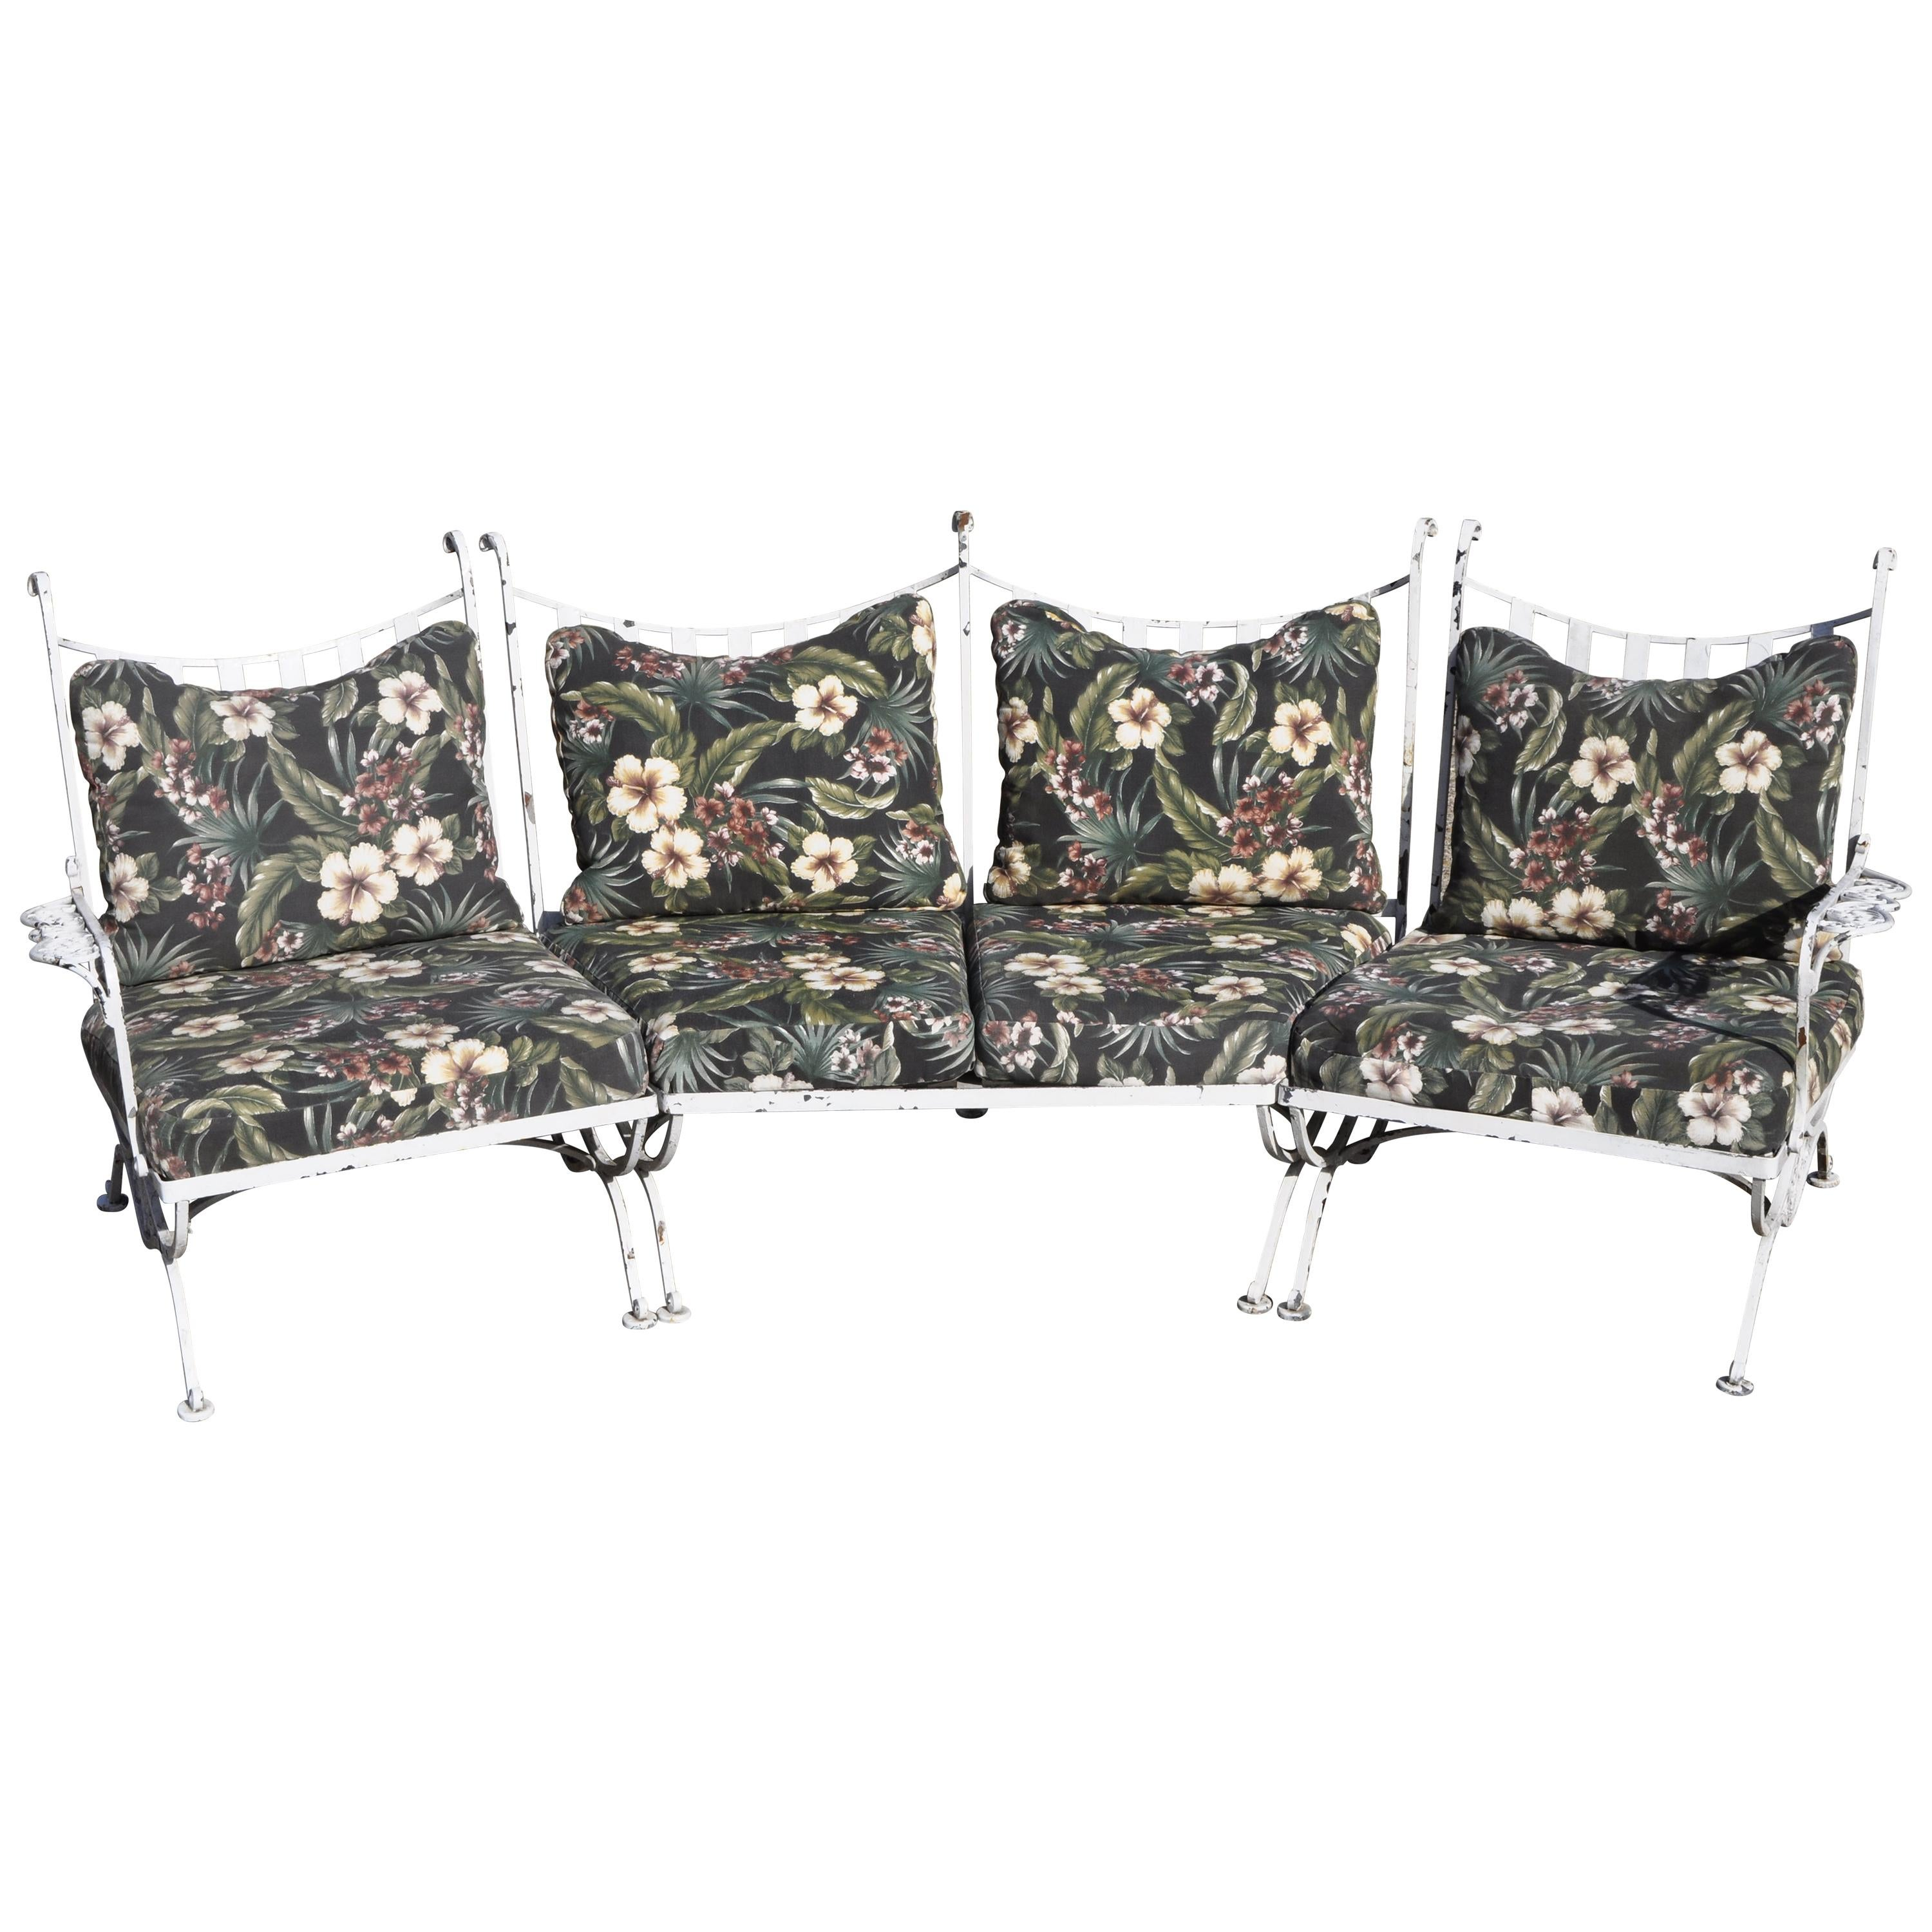 Vintage Woodard Andalusian Wrought Iron 3-Piece Curved Sunroom Garden Patio Sofa